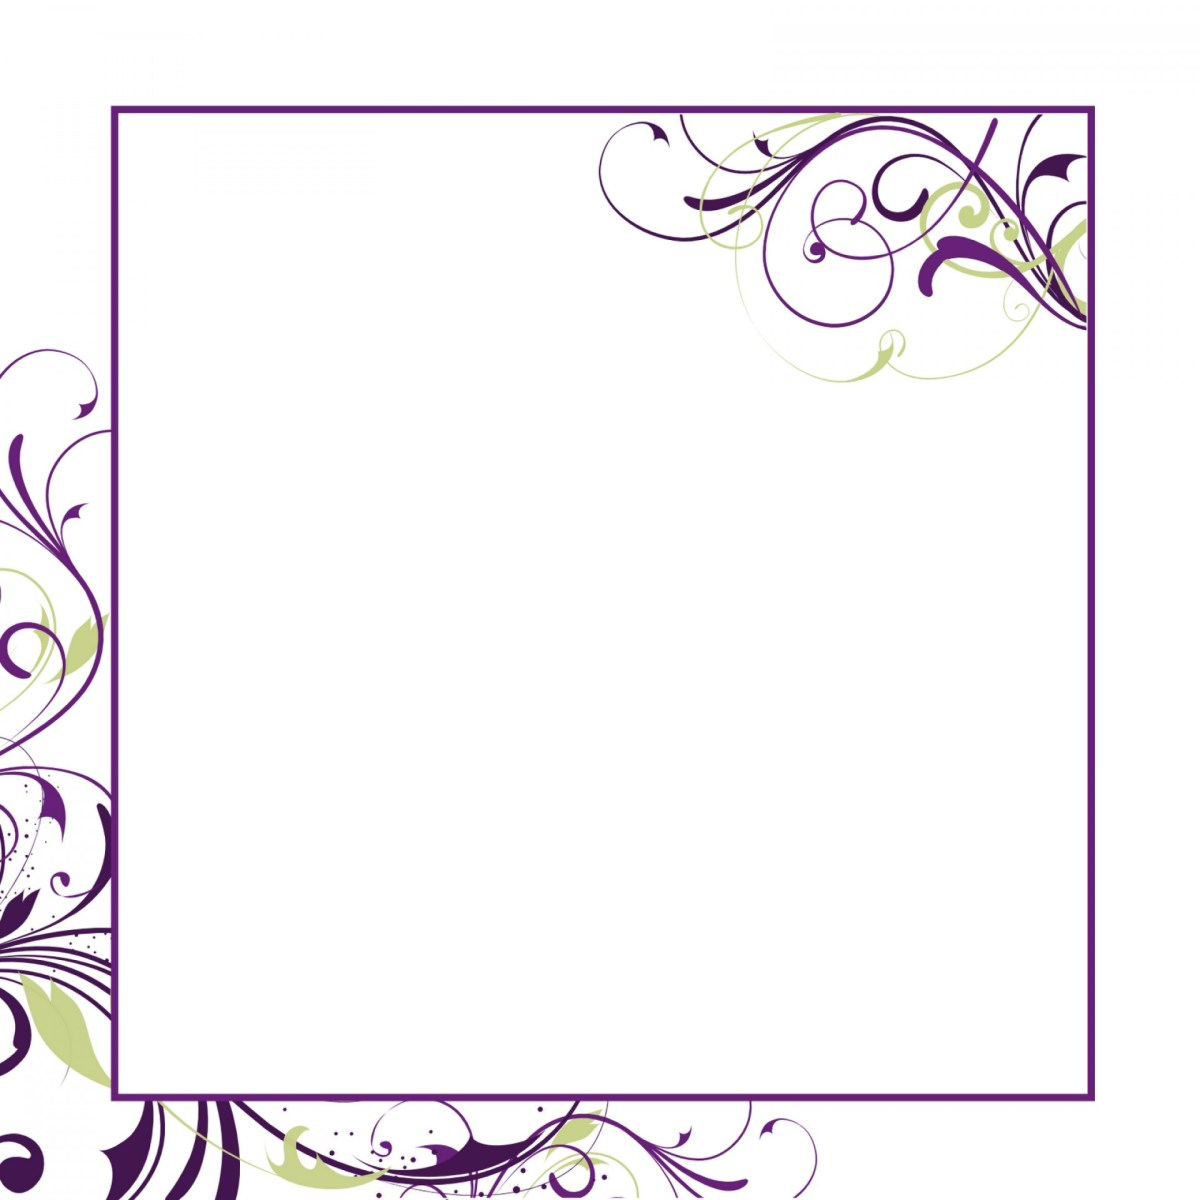 Free Wedding Invitation Templates For Word 004 Template Ideas Free Wedding Invitation Templates For Word